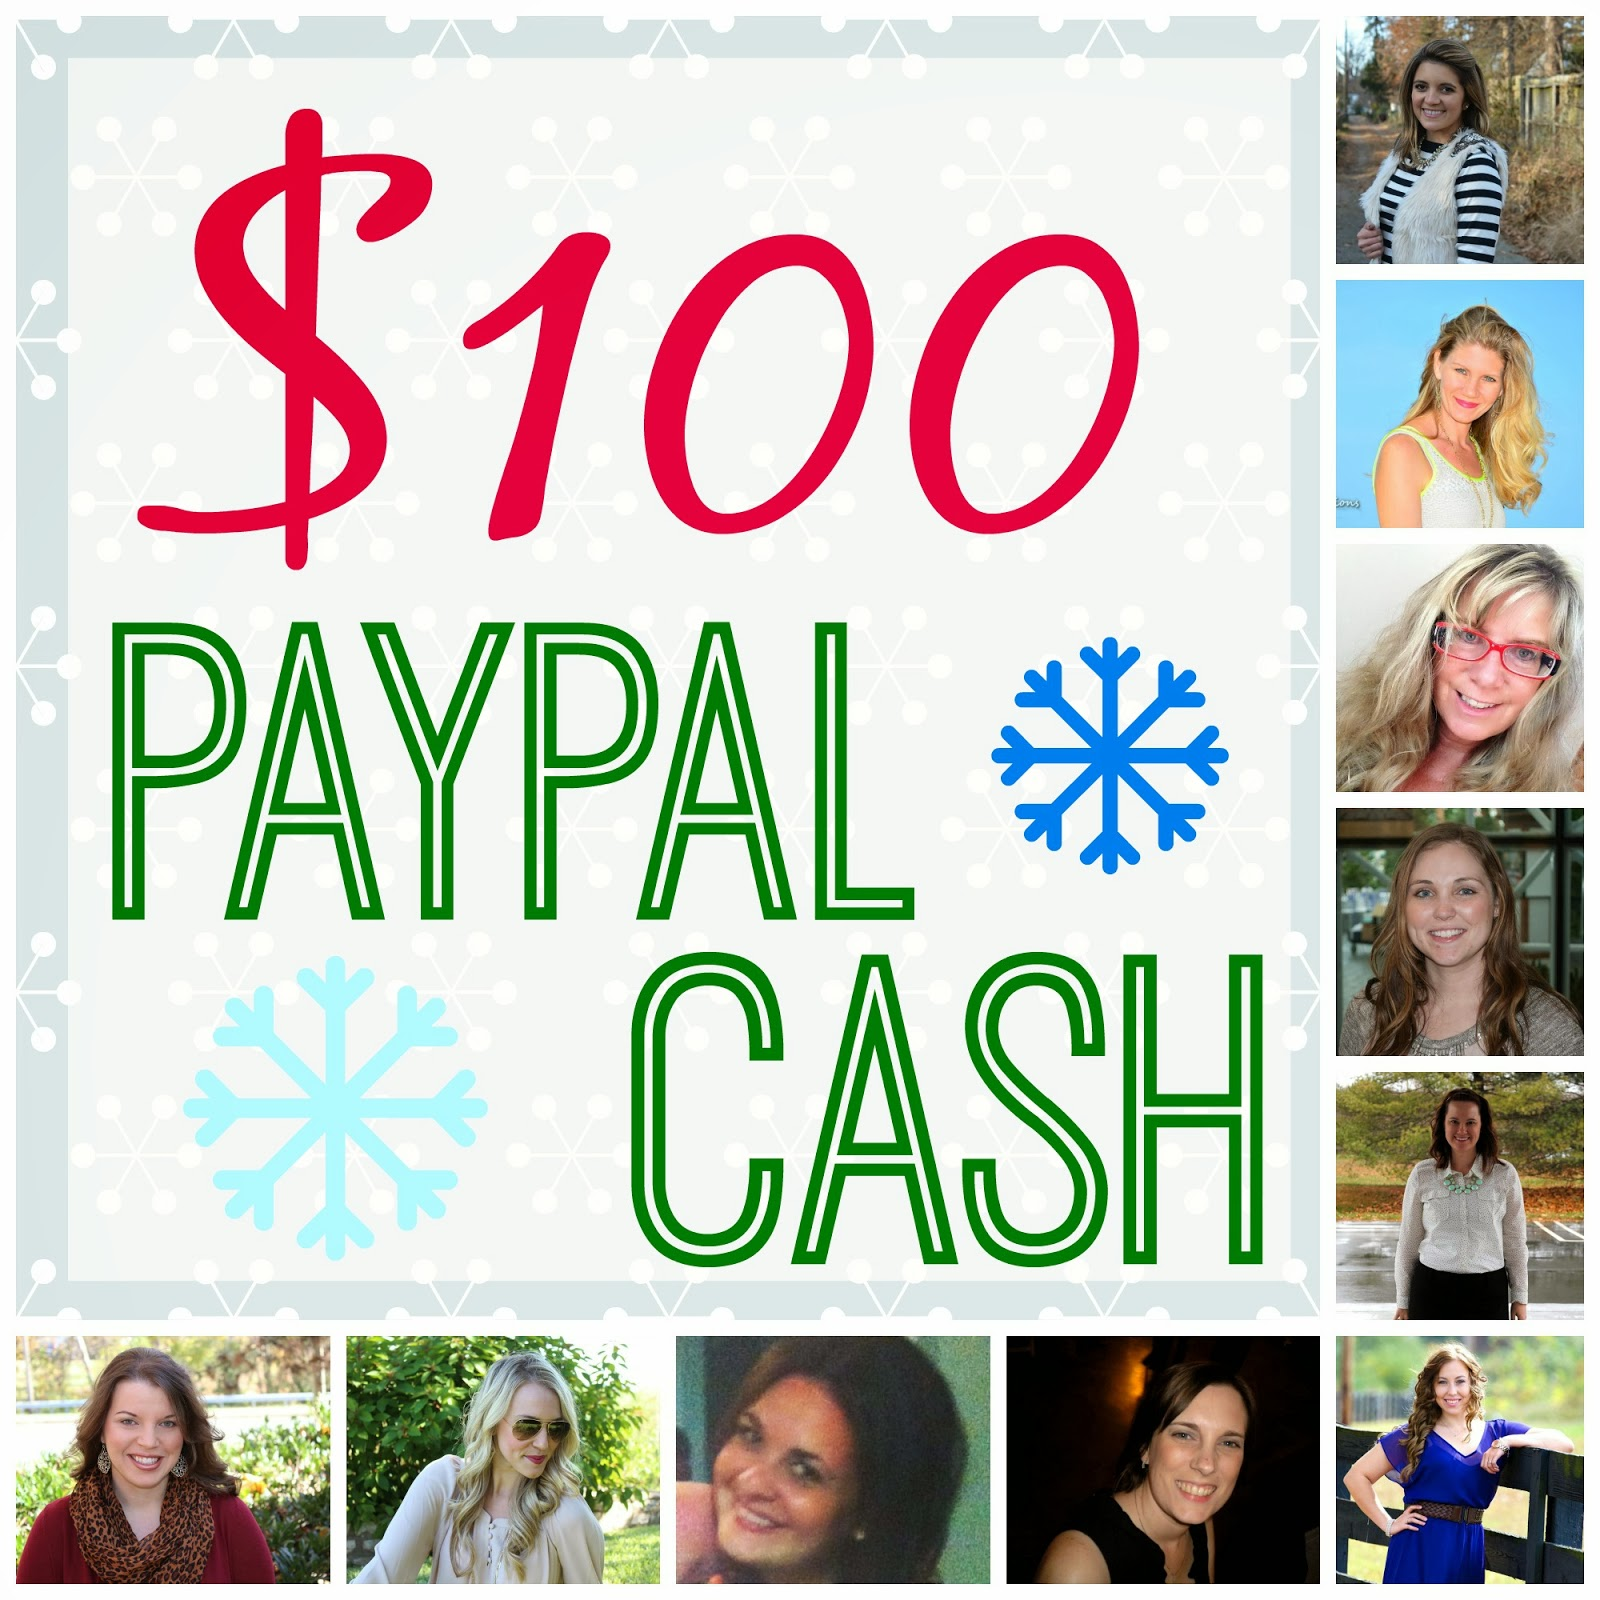 Cash Pool Vs. Cash Group 100 Paypal Cash Group Giveaway Enter For A Chance To